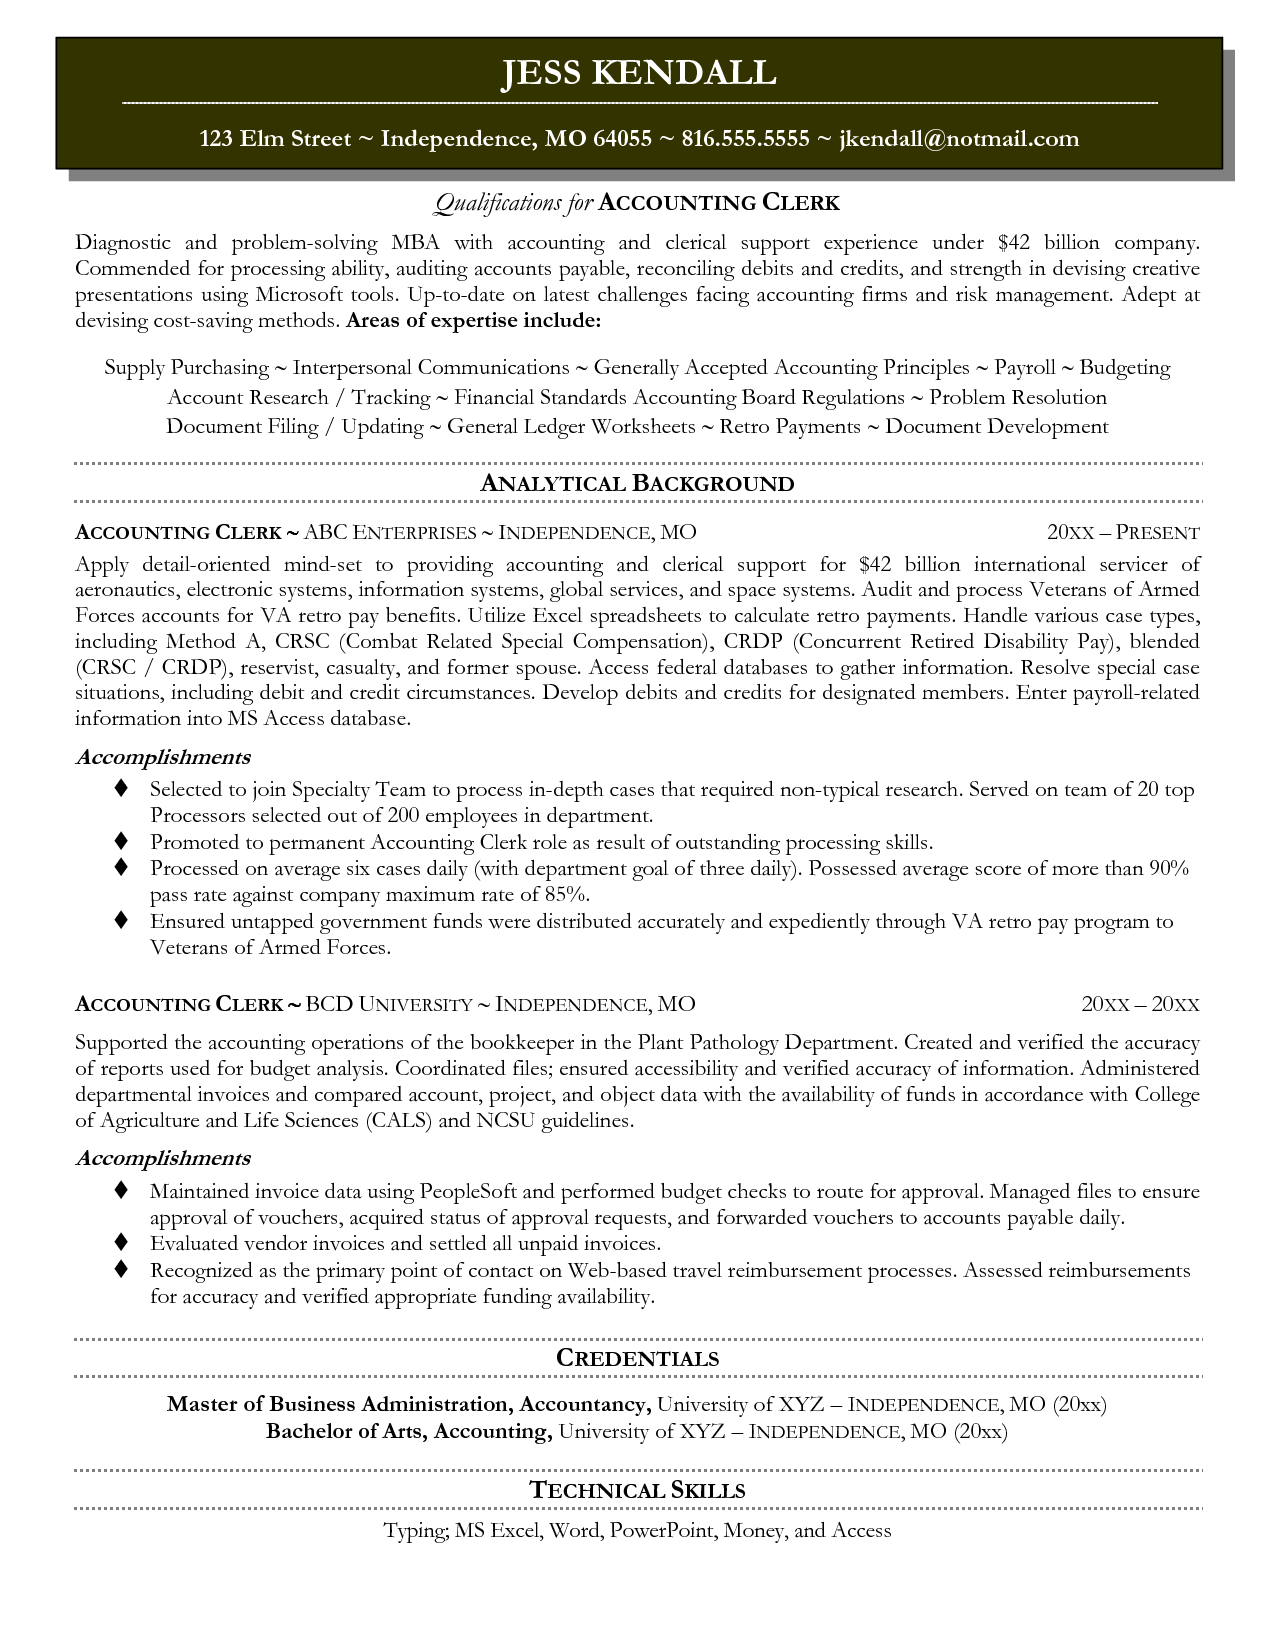 Accounting Resume Template Scope Of Work Template  Love This  Finding A Job  Pinterest